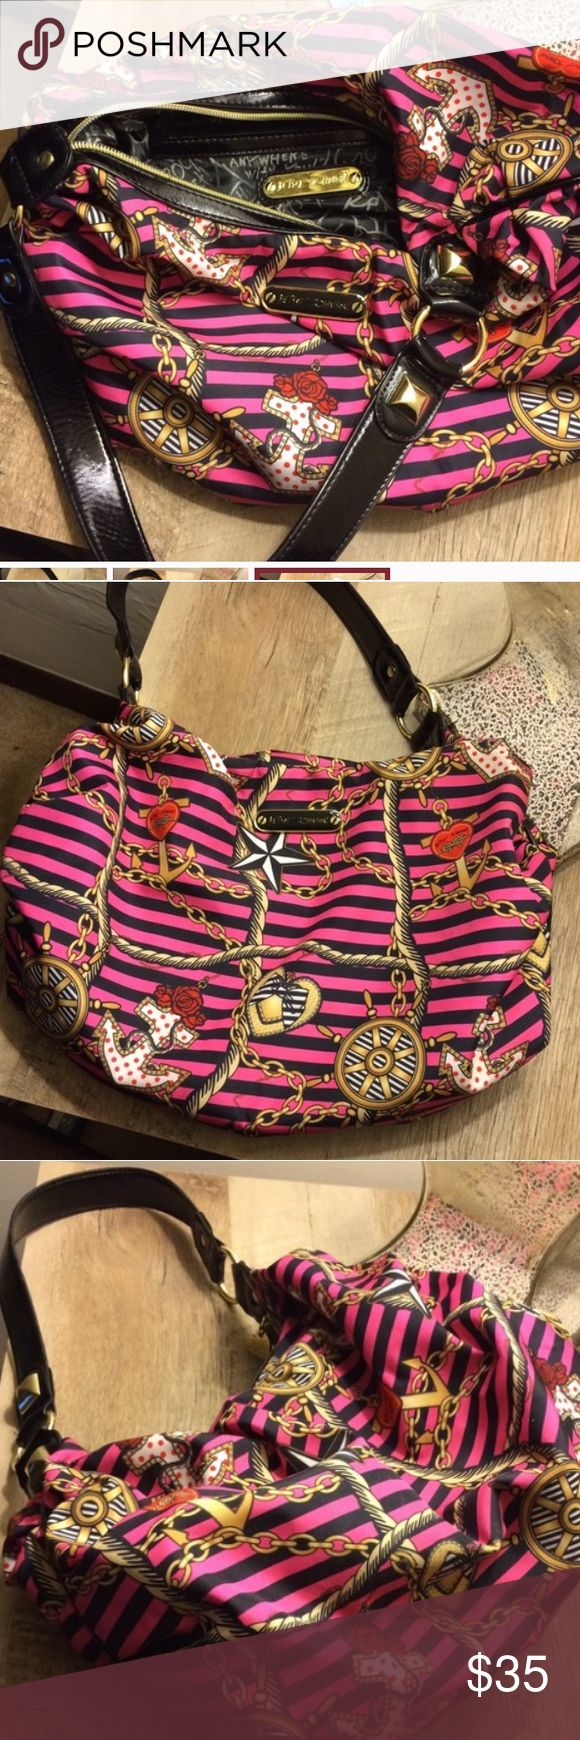 Betsy Johnson nautical purse Pink with black stripes, rope, anchors and other nautical themed designs. Great condition. Nylon purse, great shoulder bag. Love this purse, not sure I want to part with it, but thought I'd list it and see. Smoke free home. NO trades. Betsey Johnson Bags Shoulder Bags